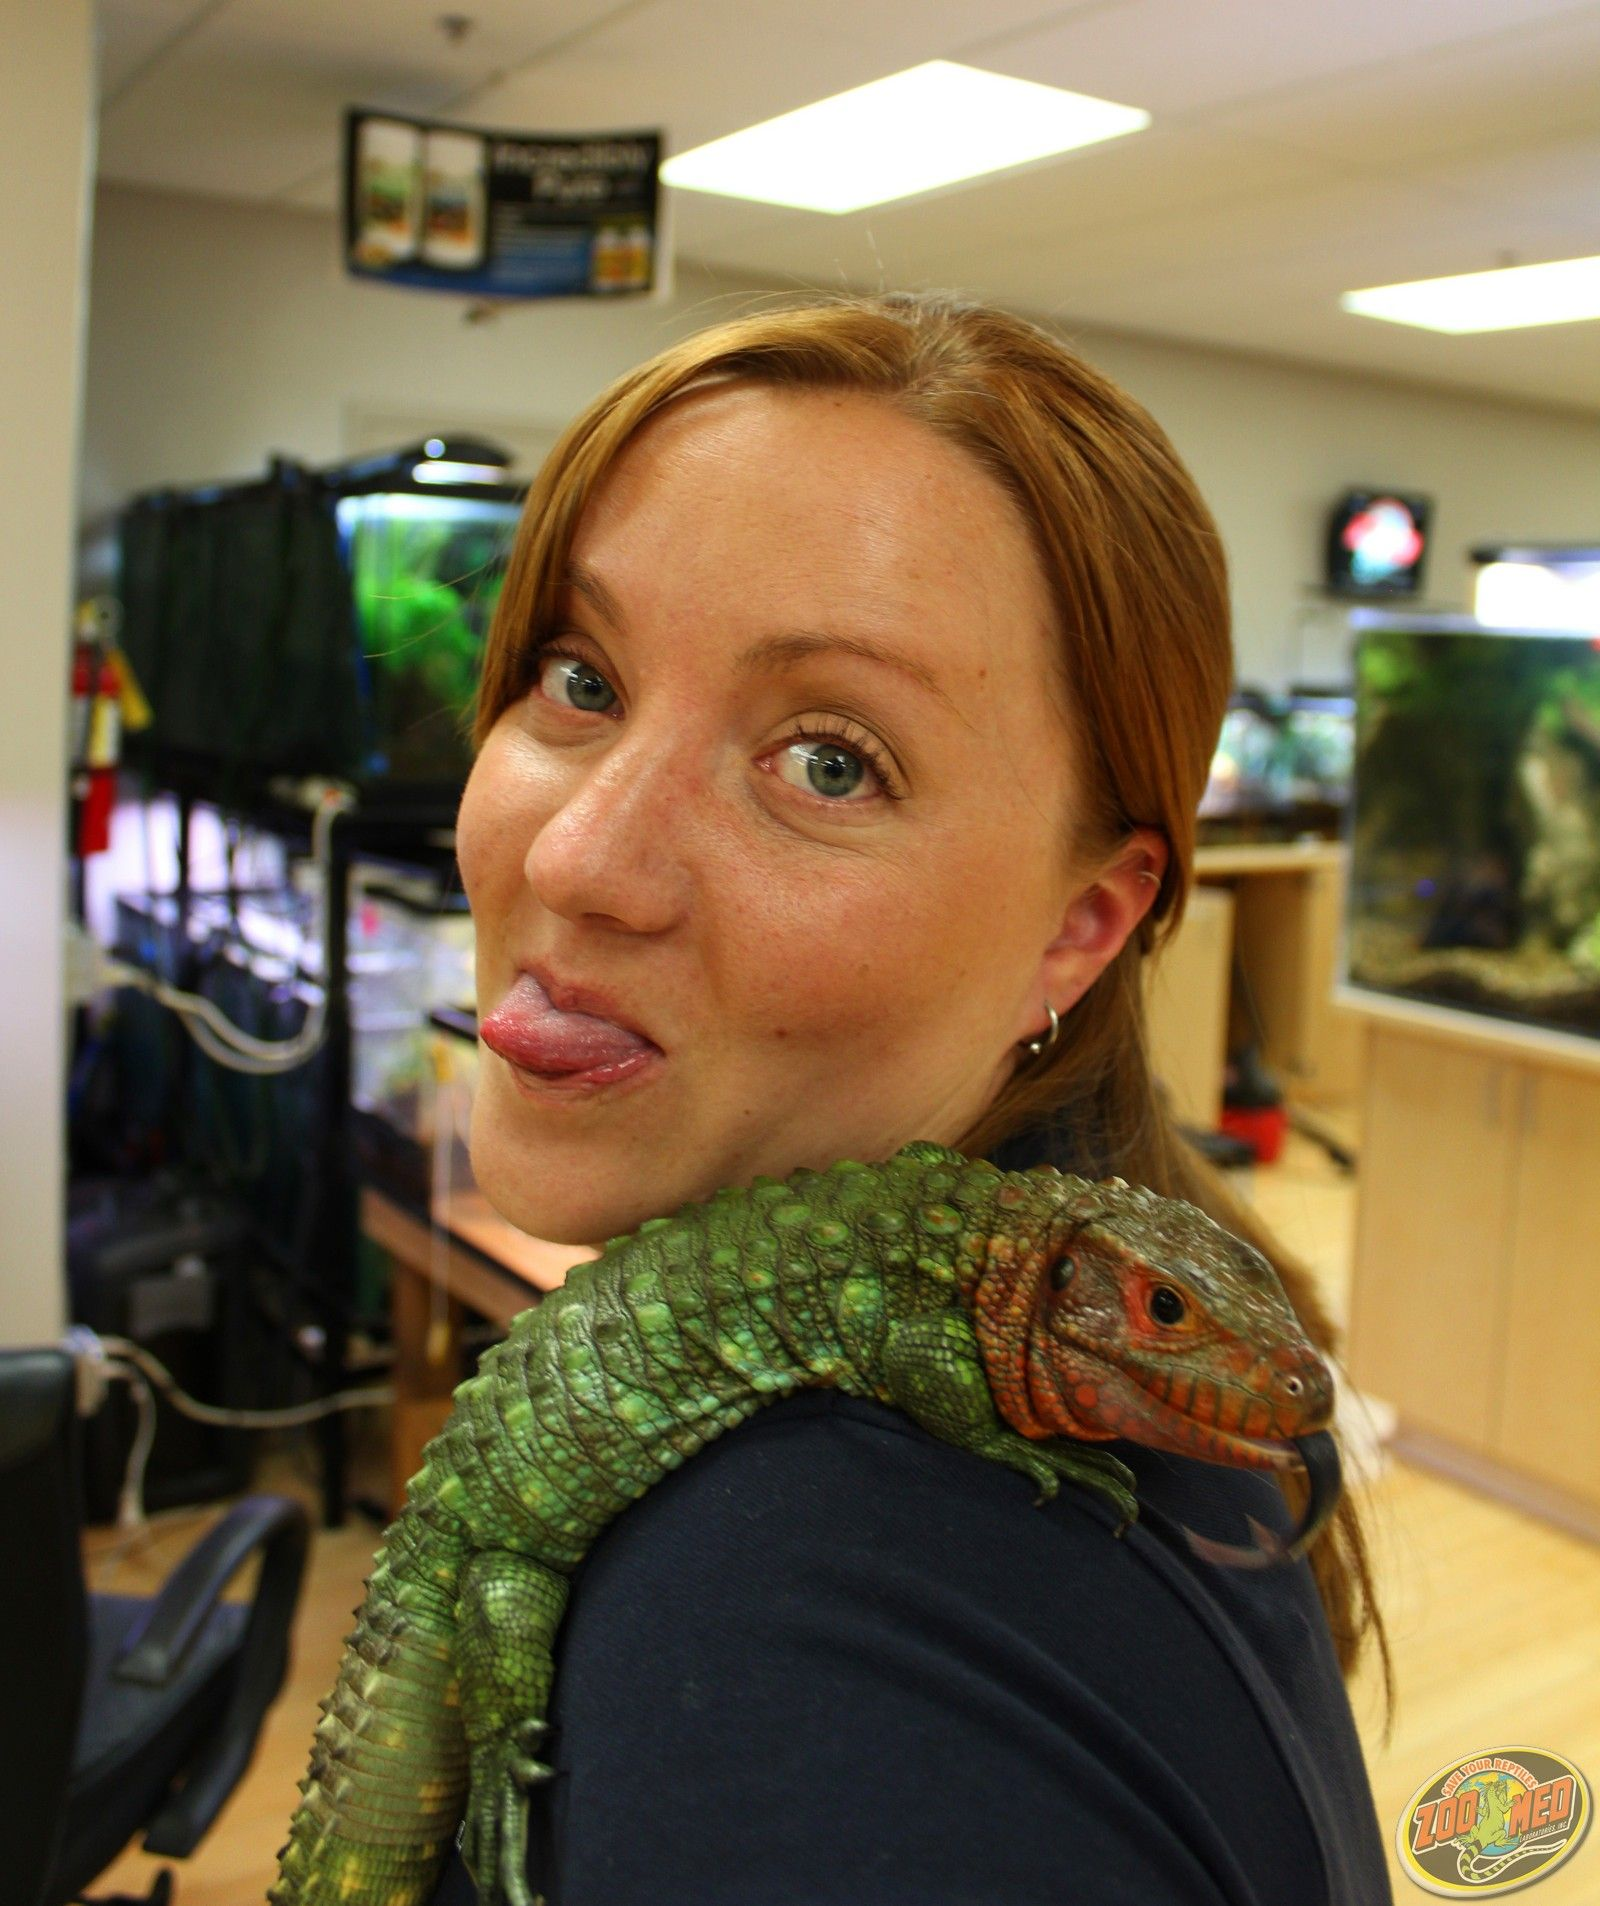 Caiman Lizard, my dream pet. Seriously just as good as it